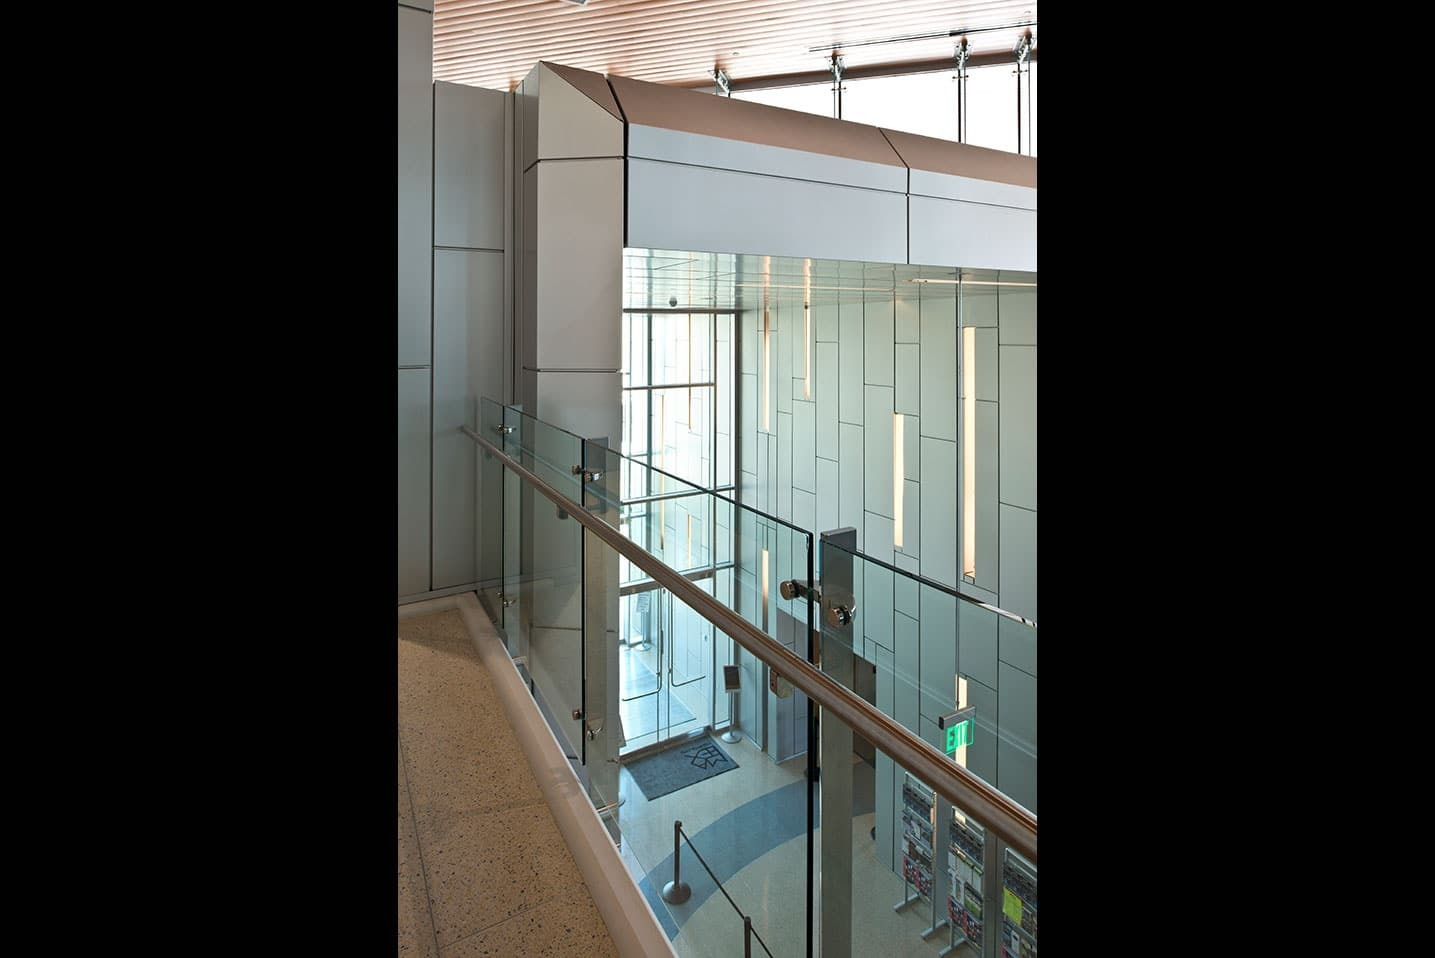 The Mississippi Arts building used Dri-Designs Panels to create a beautiful lobby entrance.